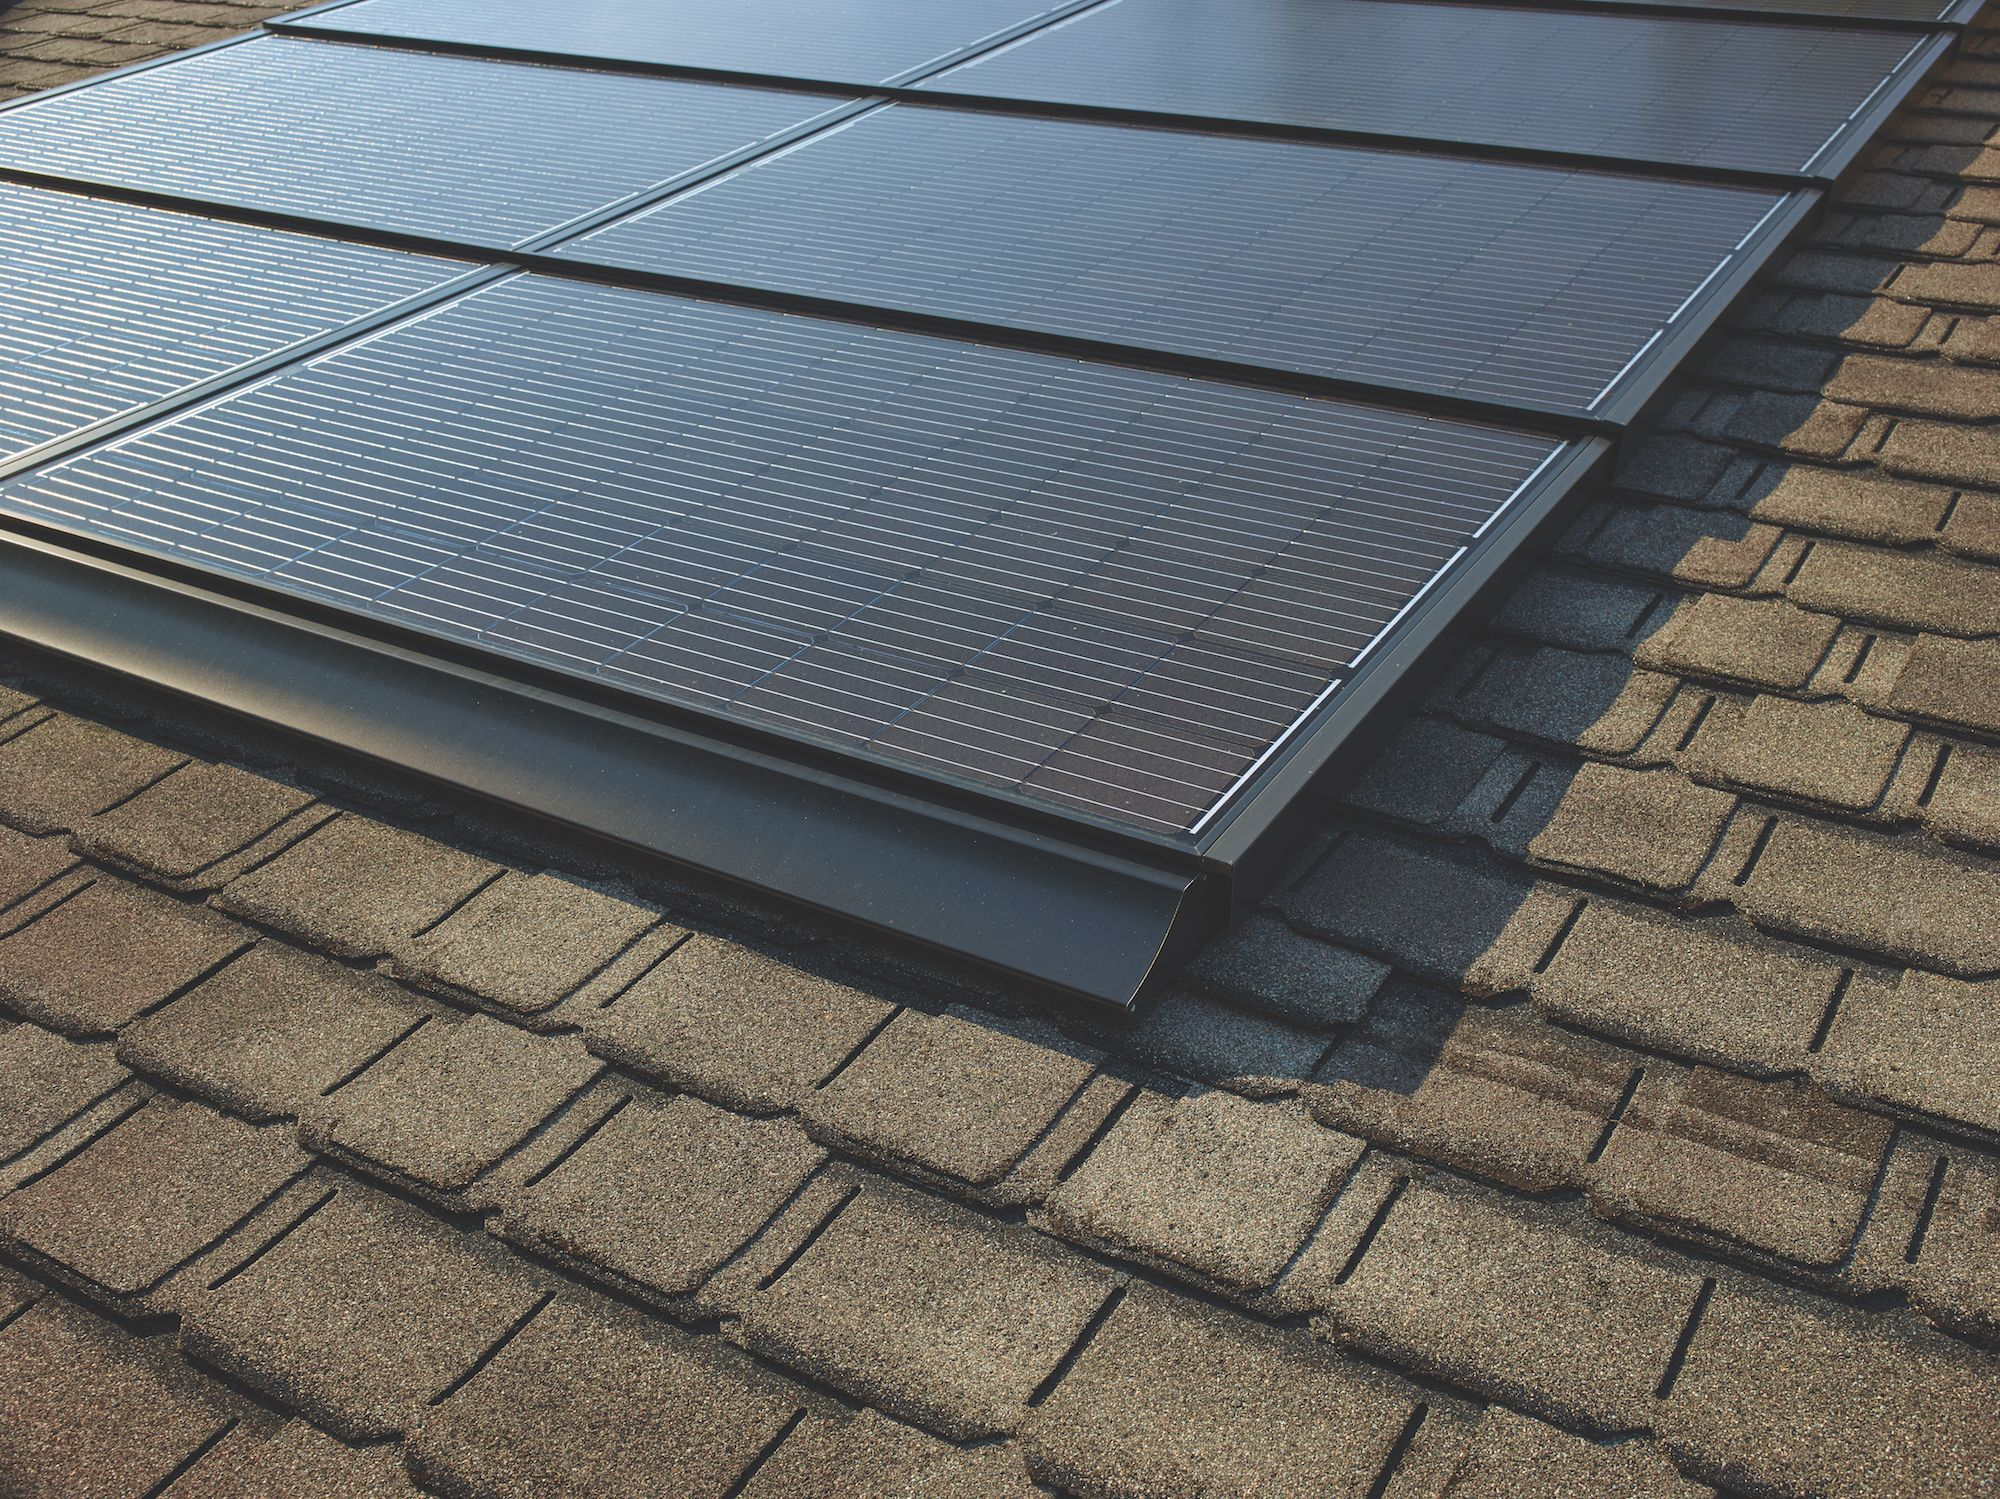 Meet The Solar Roof Designed By America S Largest Roofing Manufacturer With Images Solar Roof Solar Roof Design